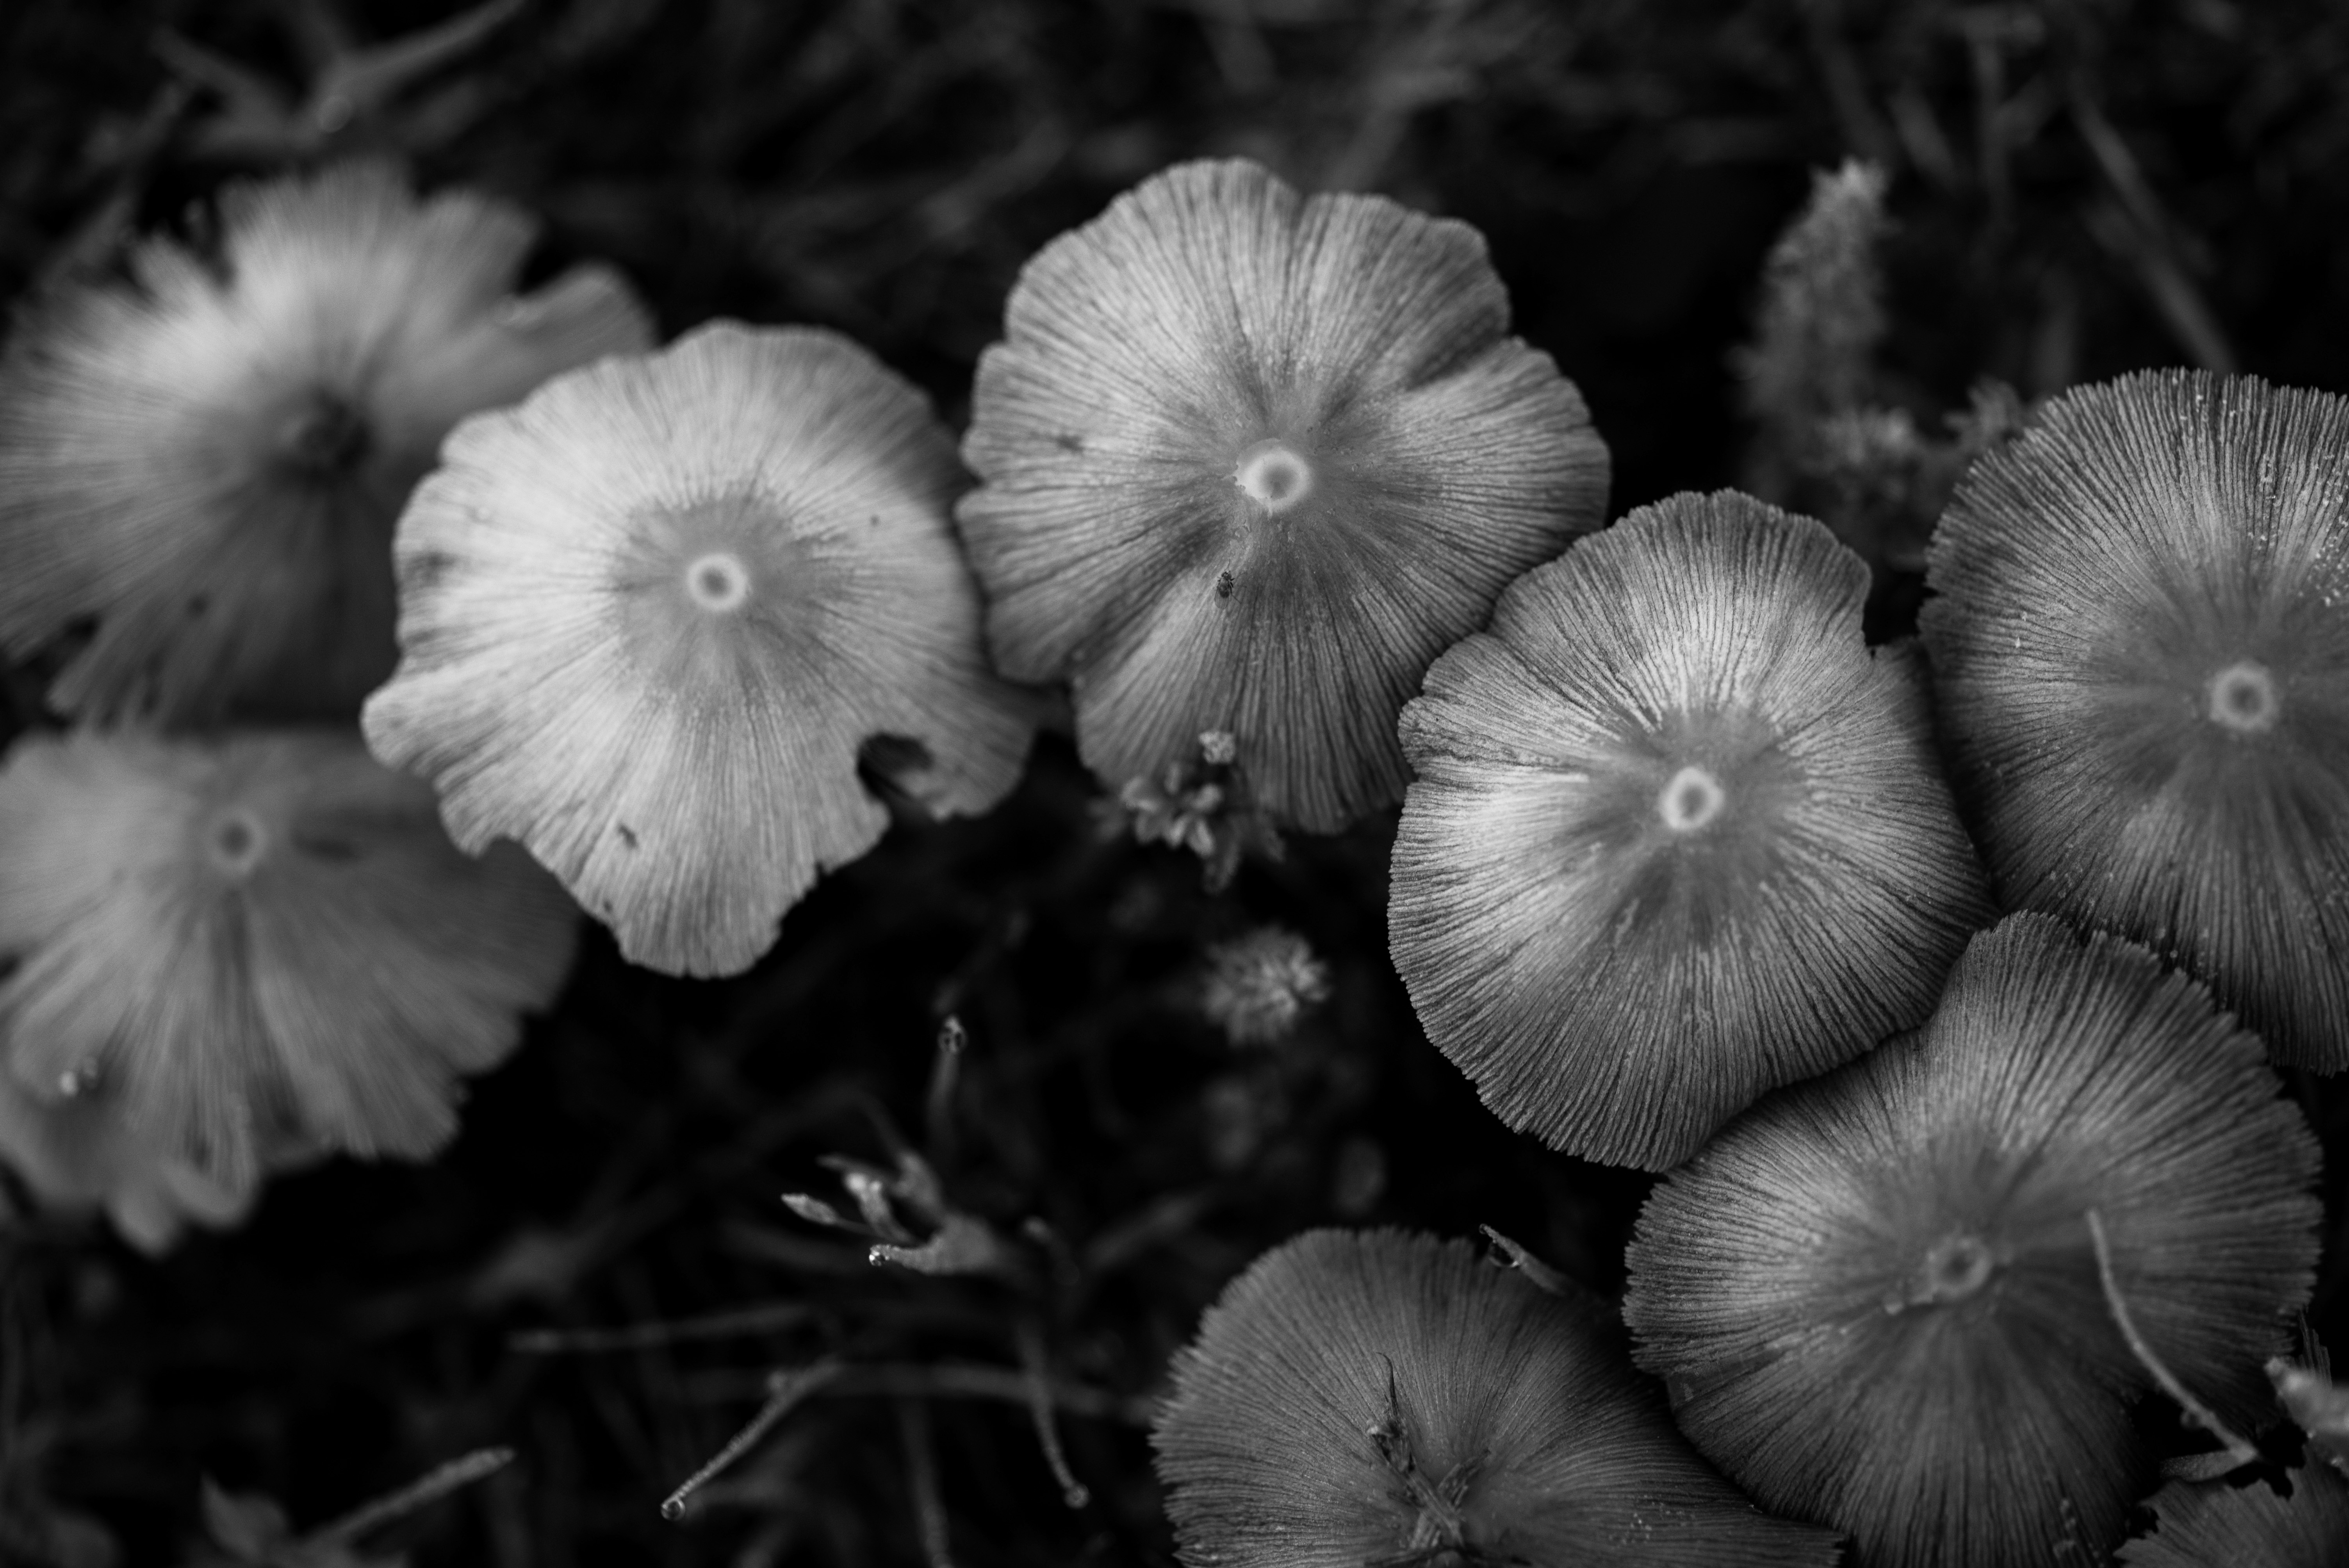 grayscale_photography_of_mushroom-scopio